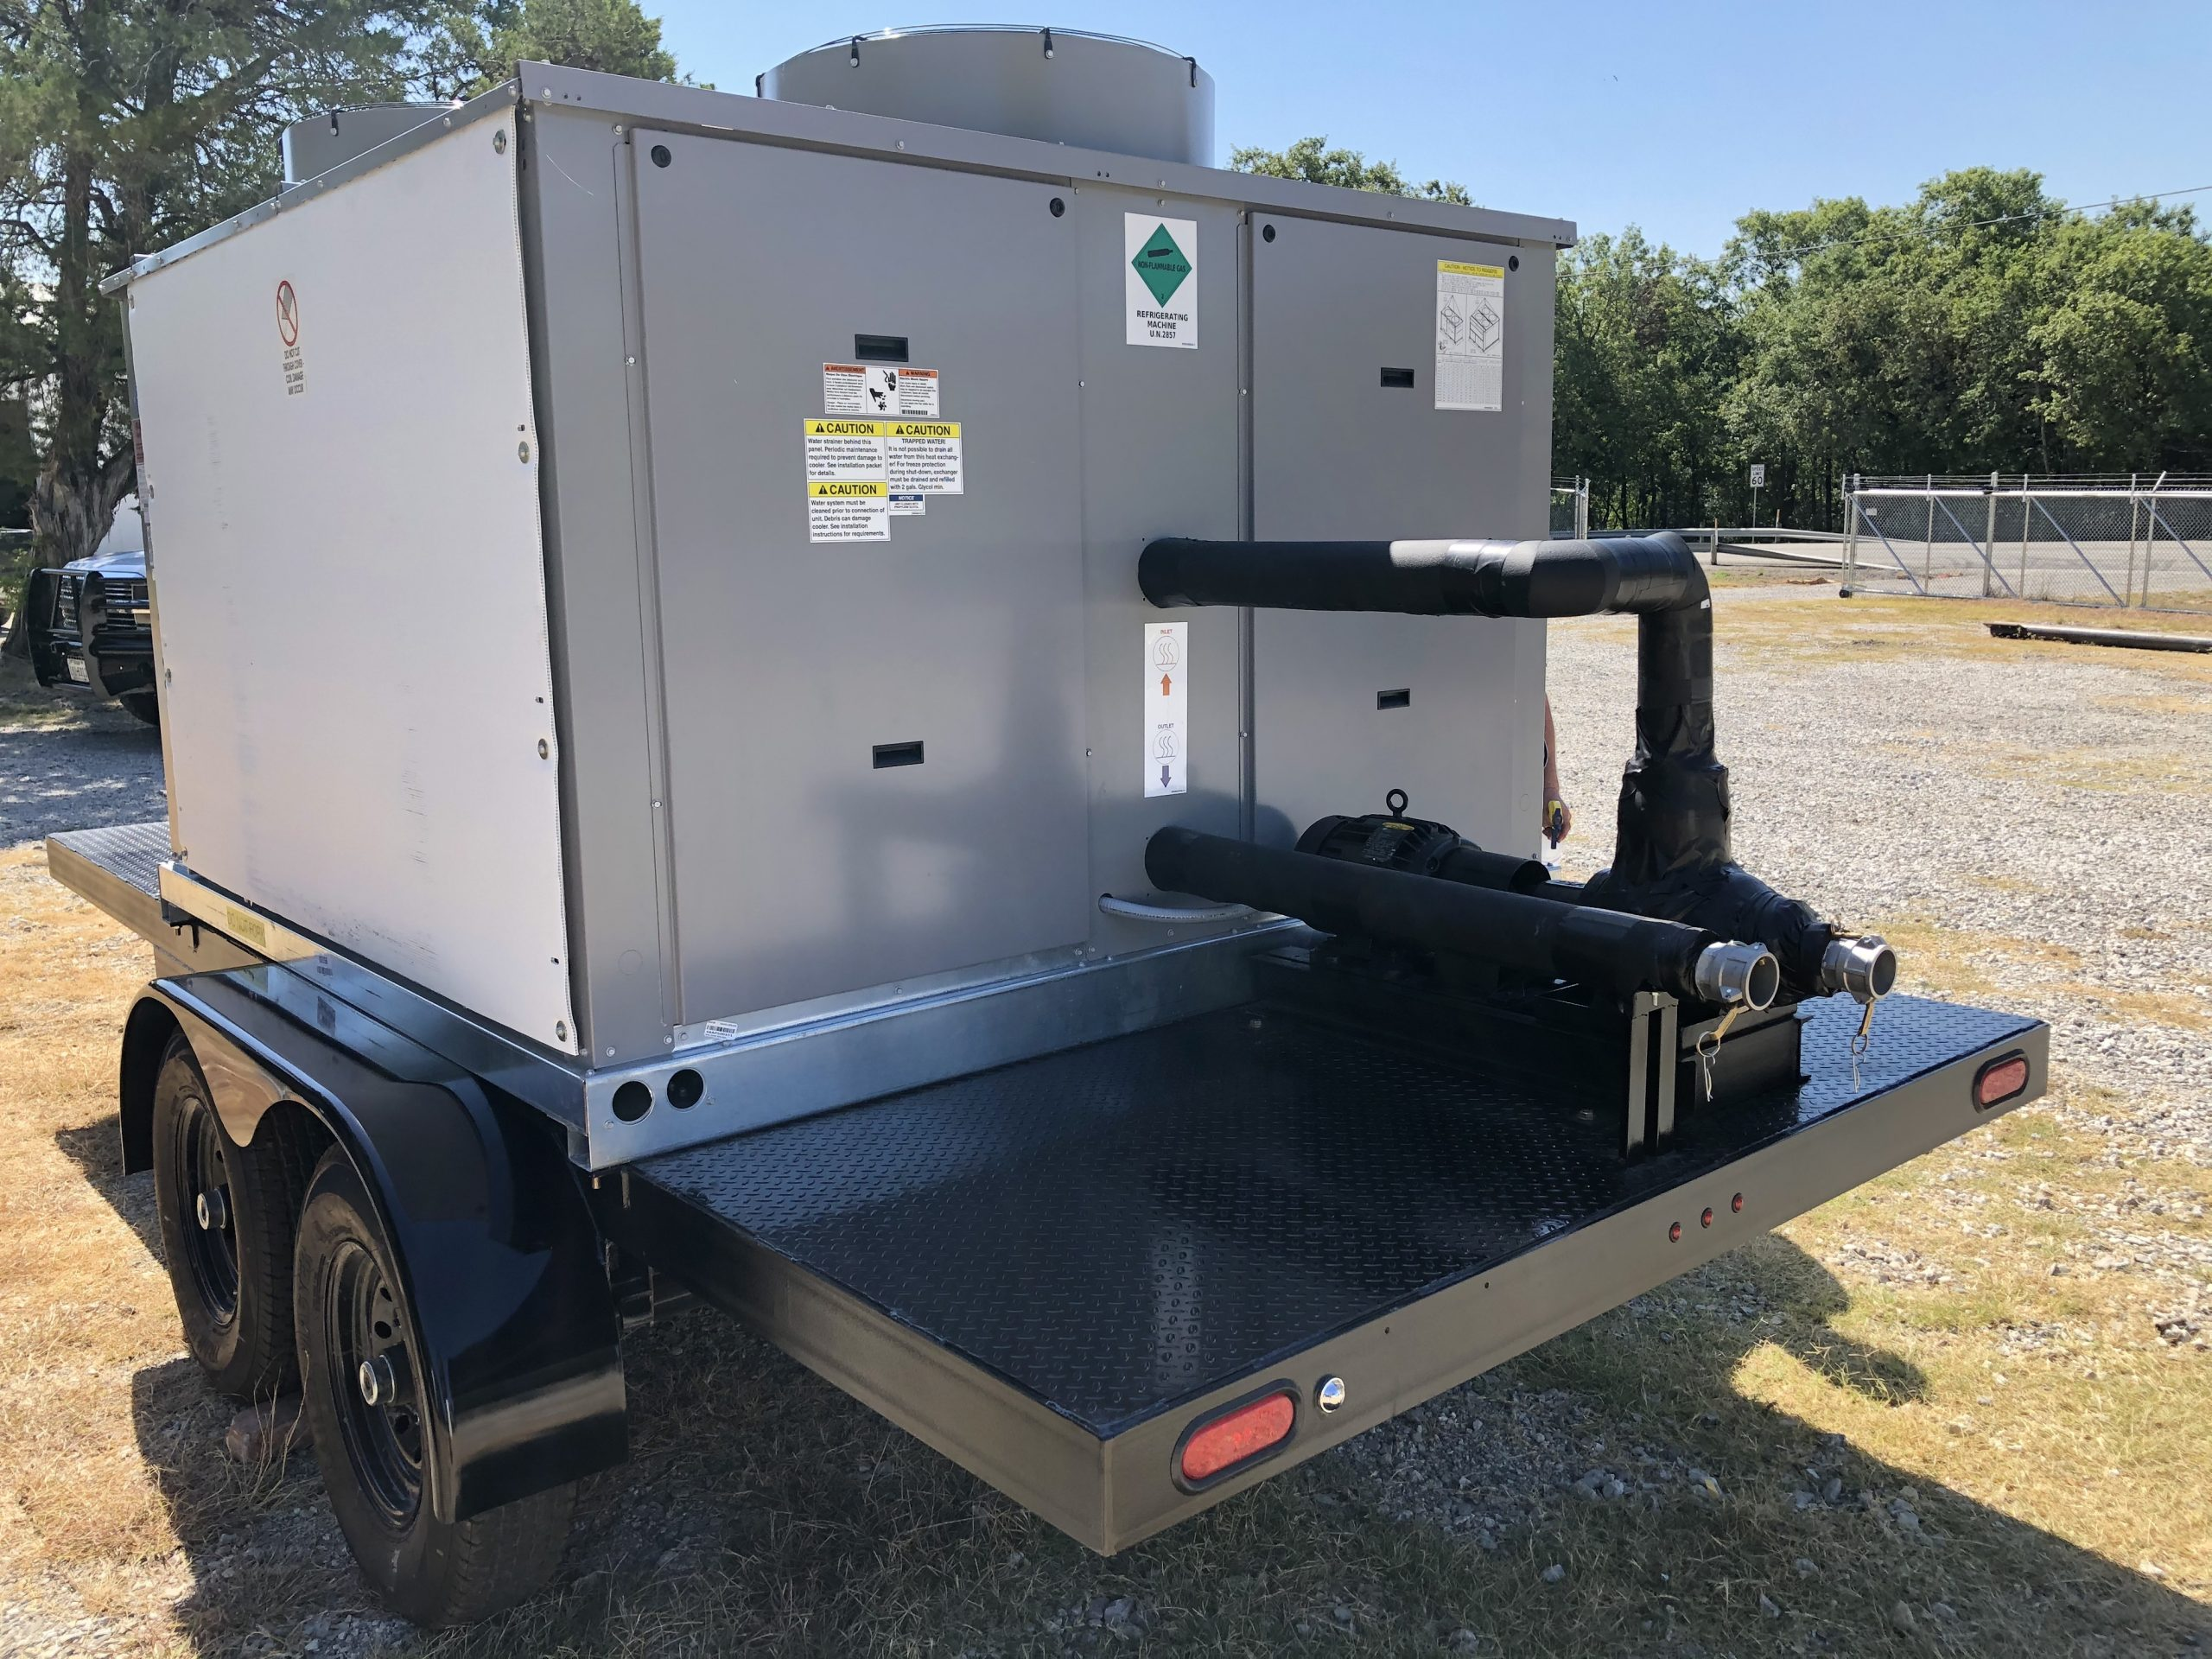 40 ton air cooled chiller with pump and controls